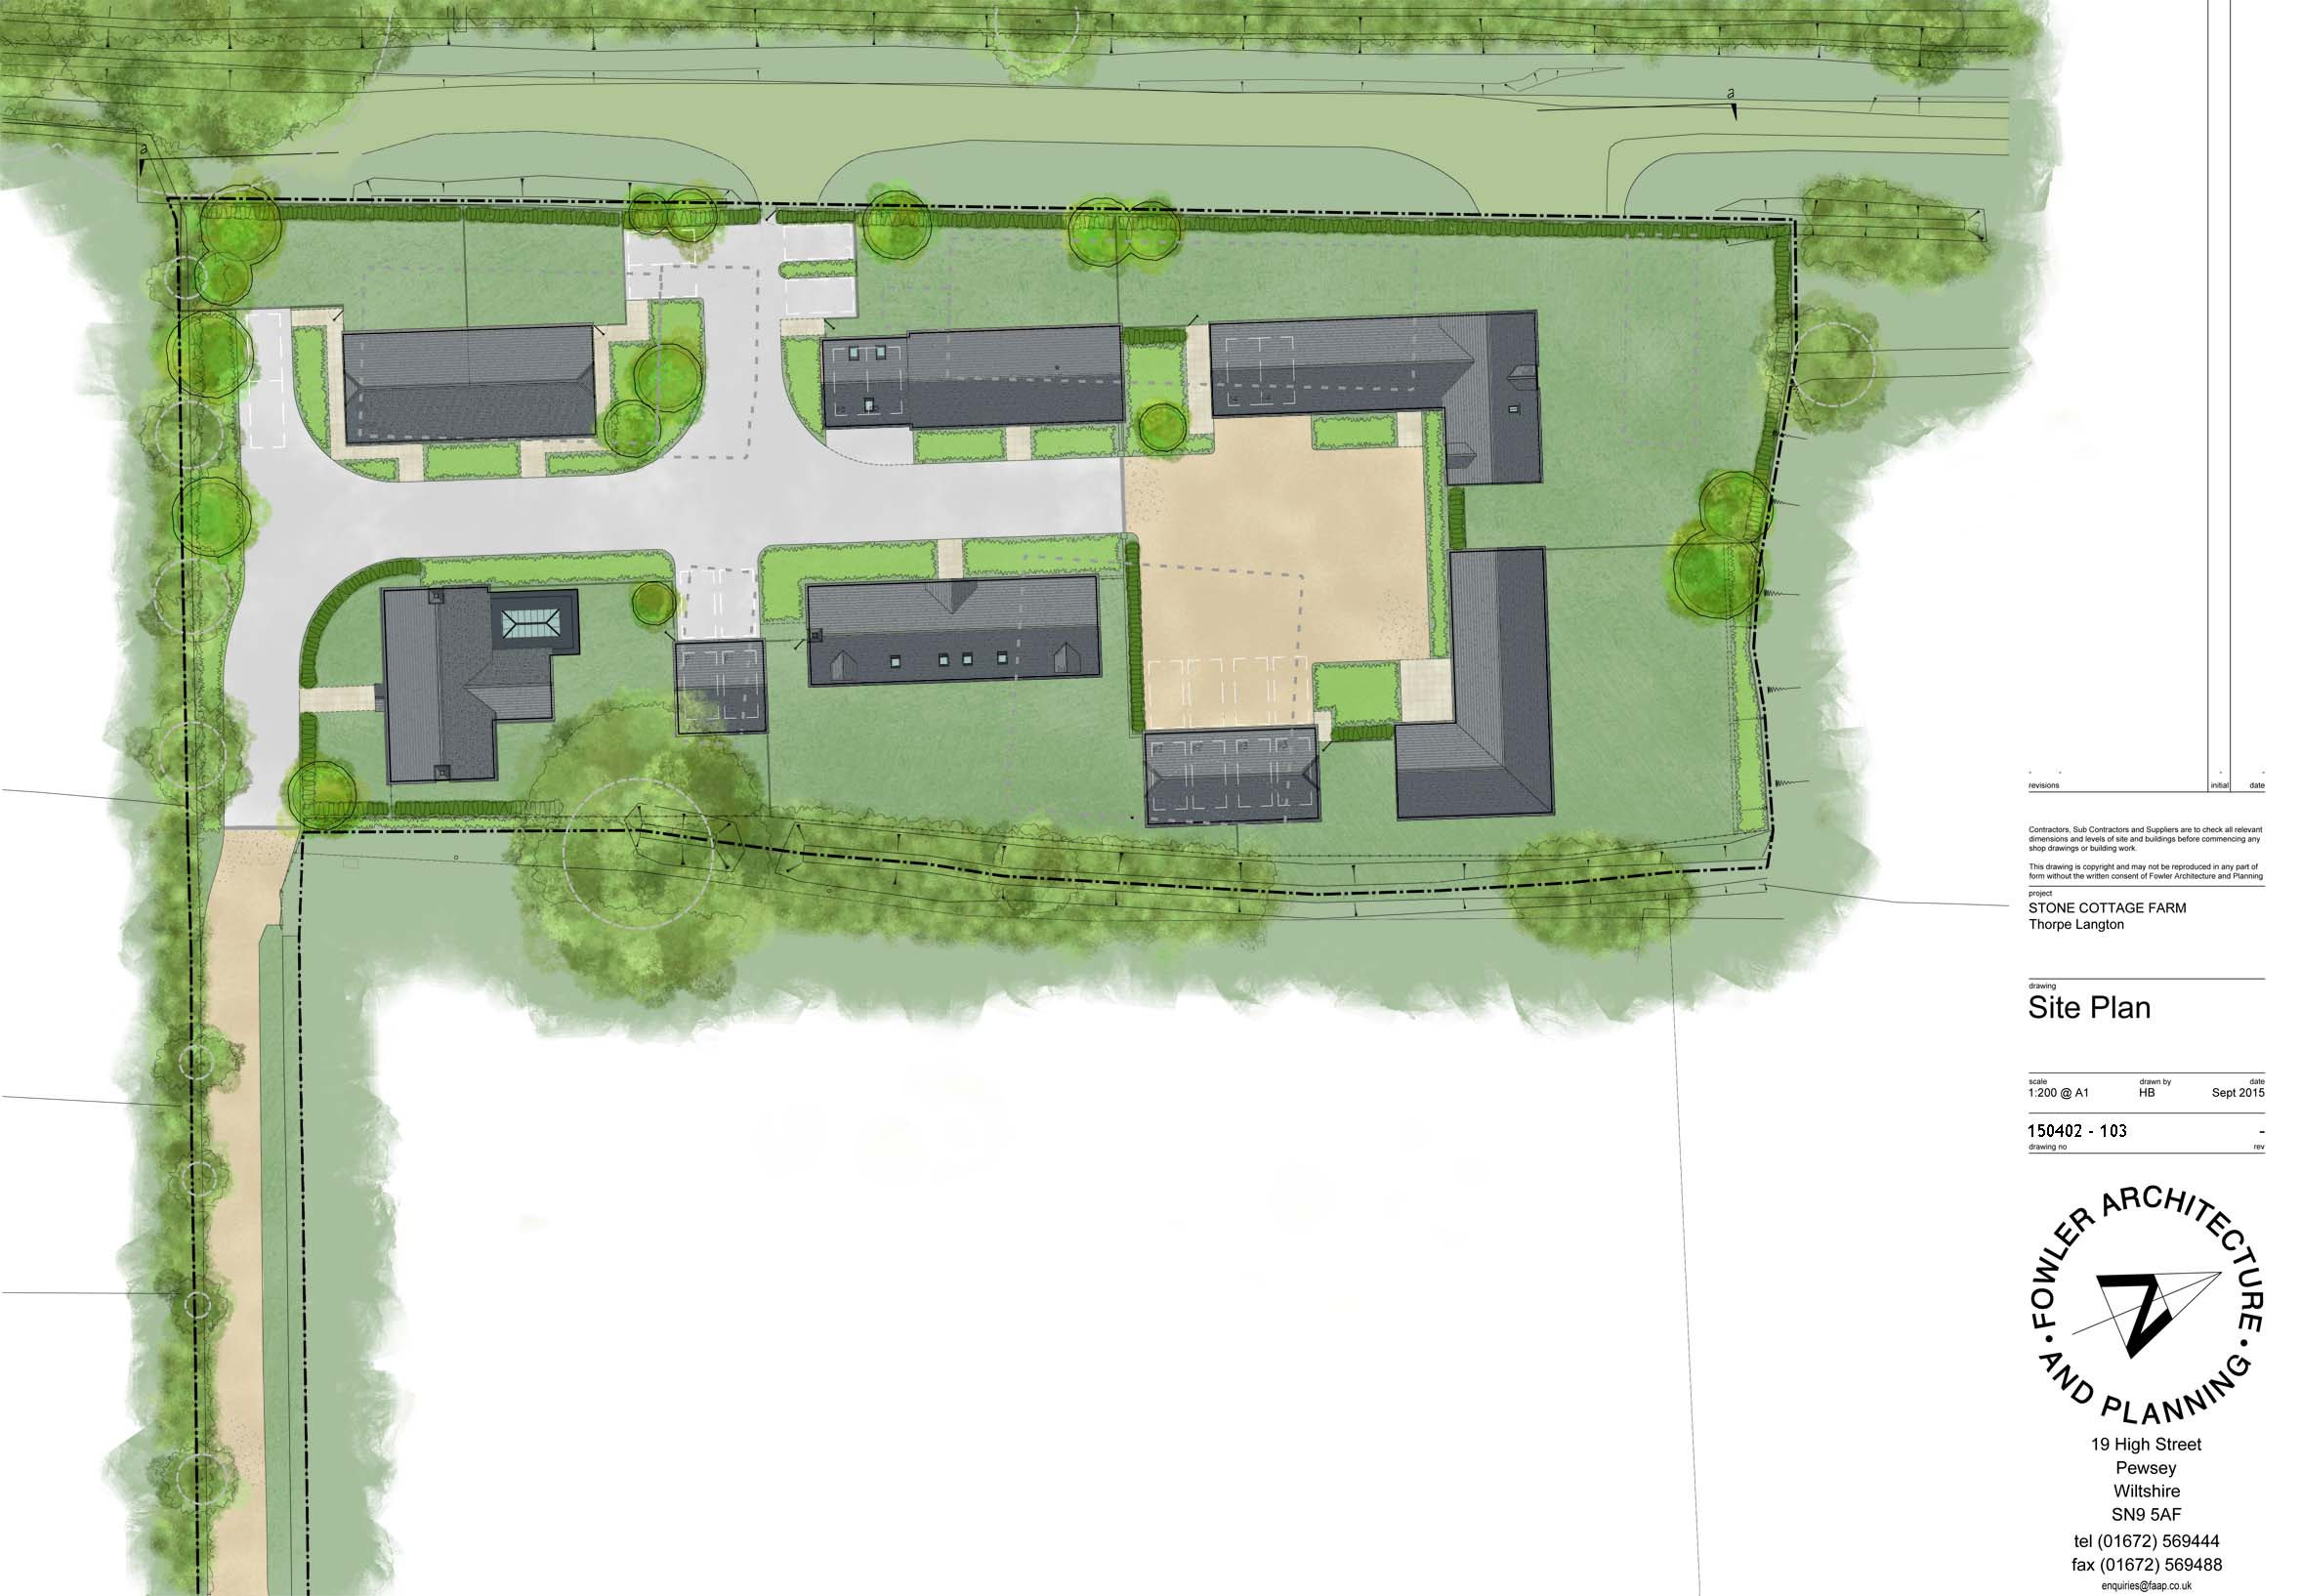 150402-Thorpe-Langton-Site-Plan-no-text.jpg